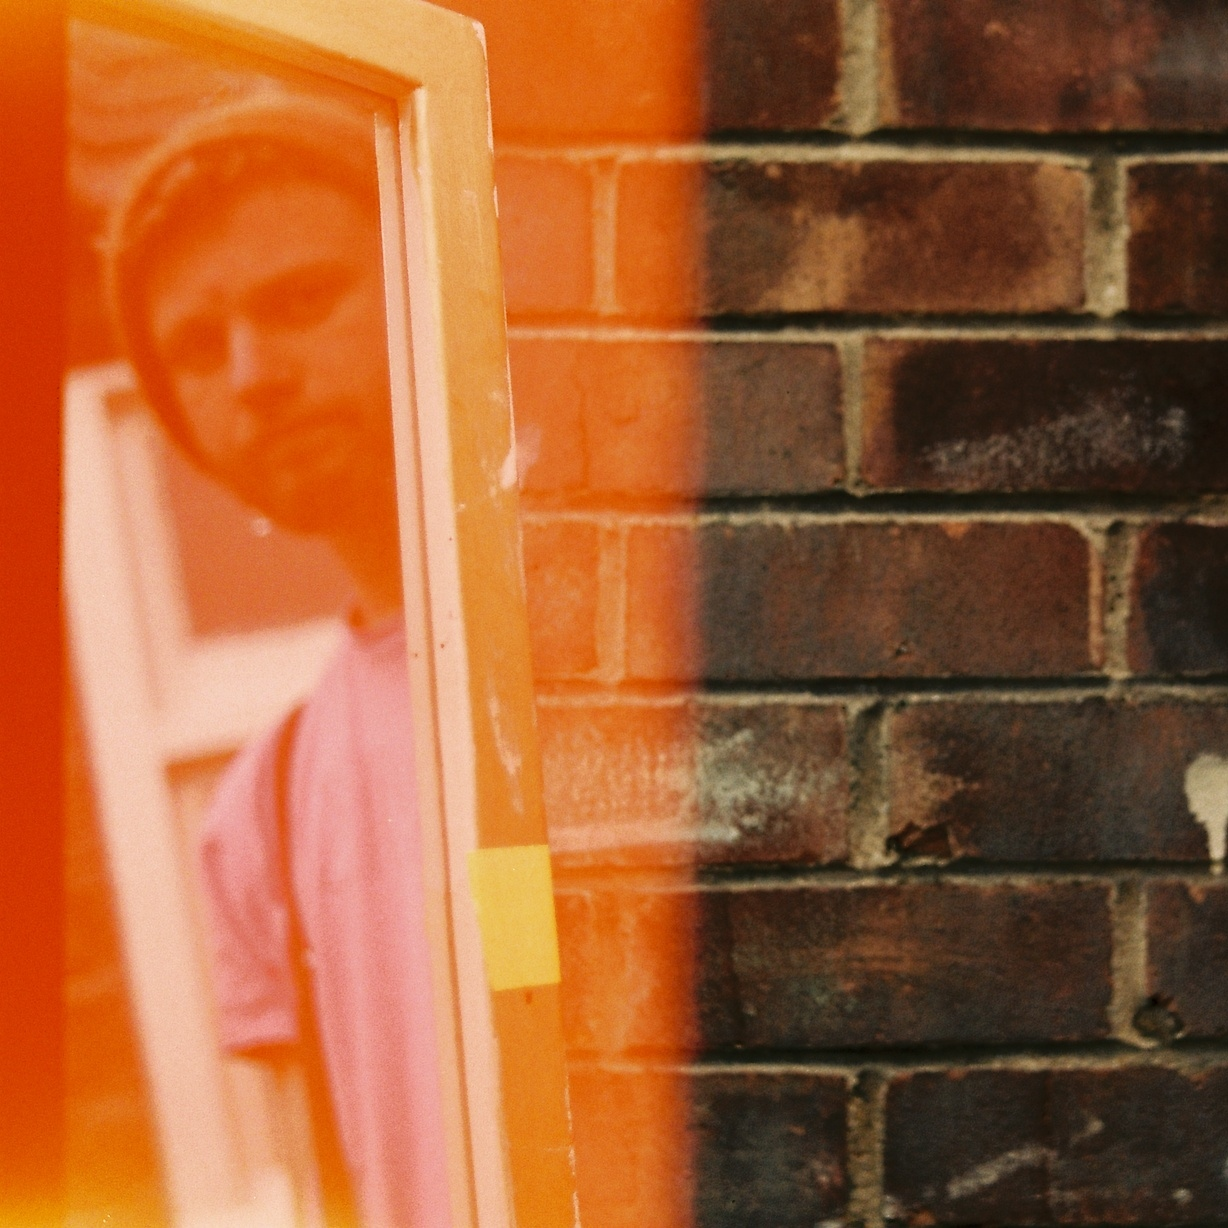 James Mcilwrath (young white man in beanie and pink t-shirt) reflected in a window